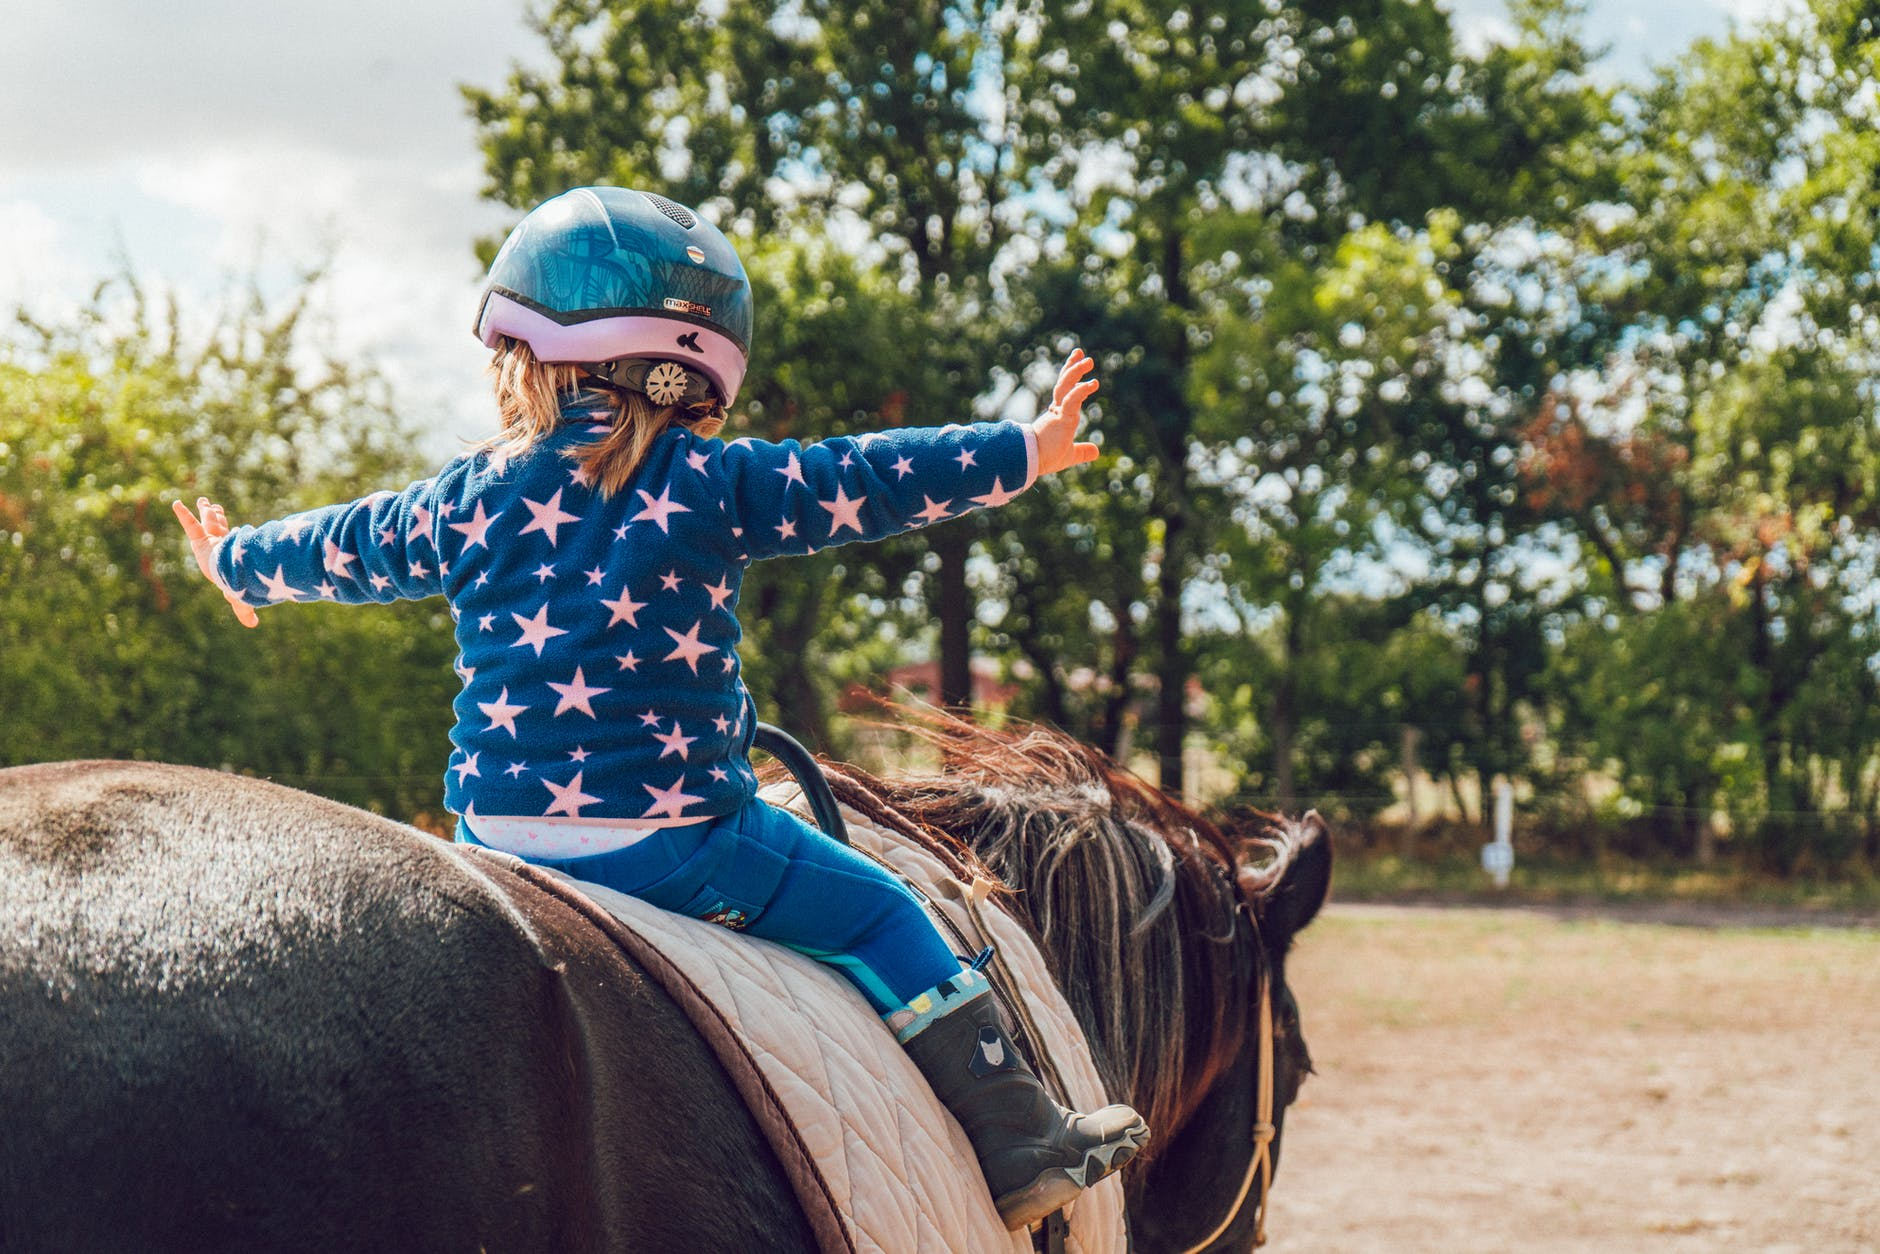 little girl riding the horse